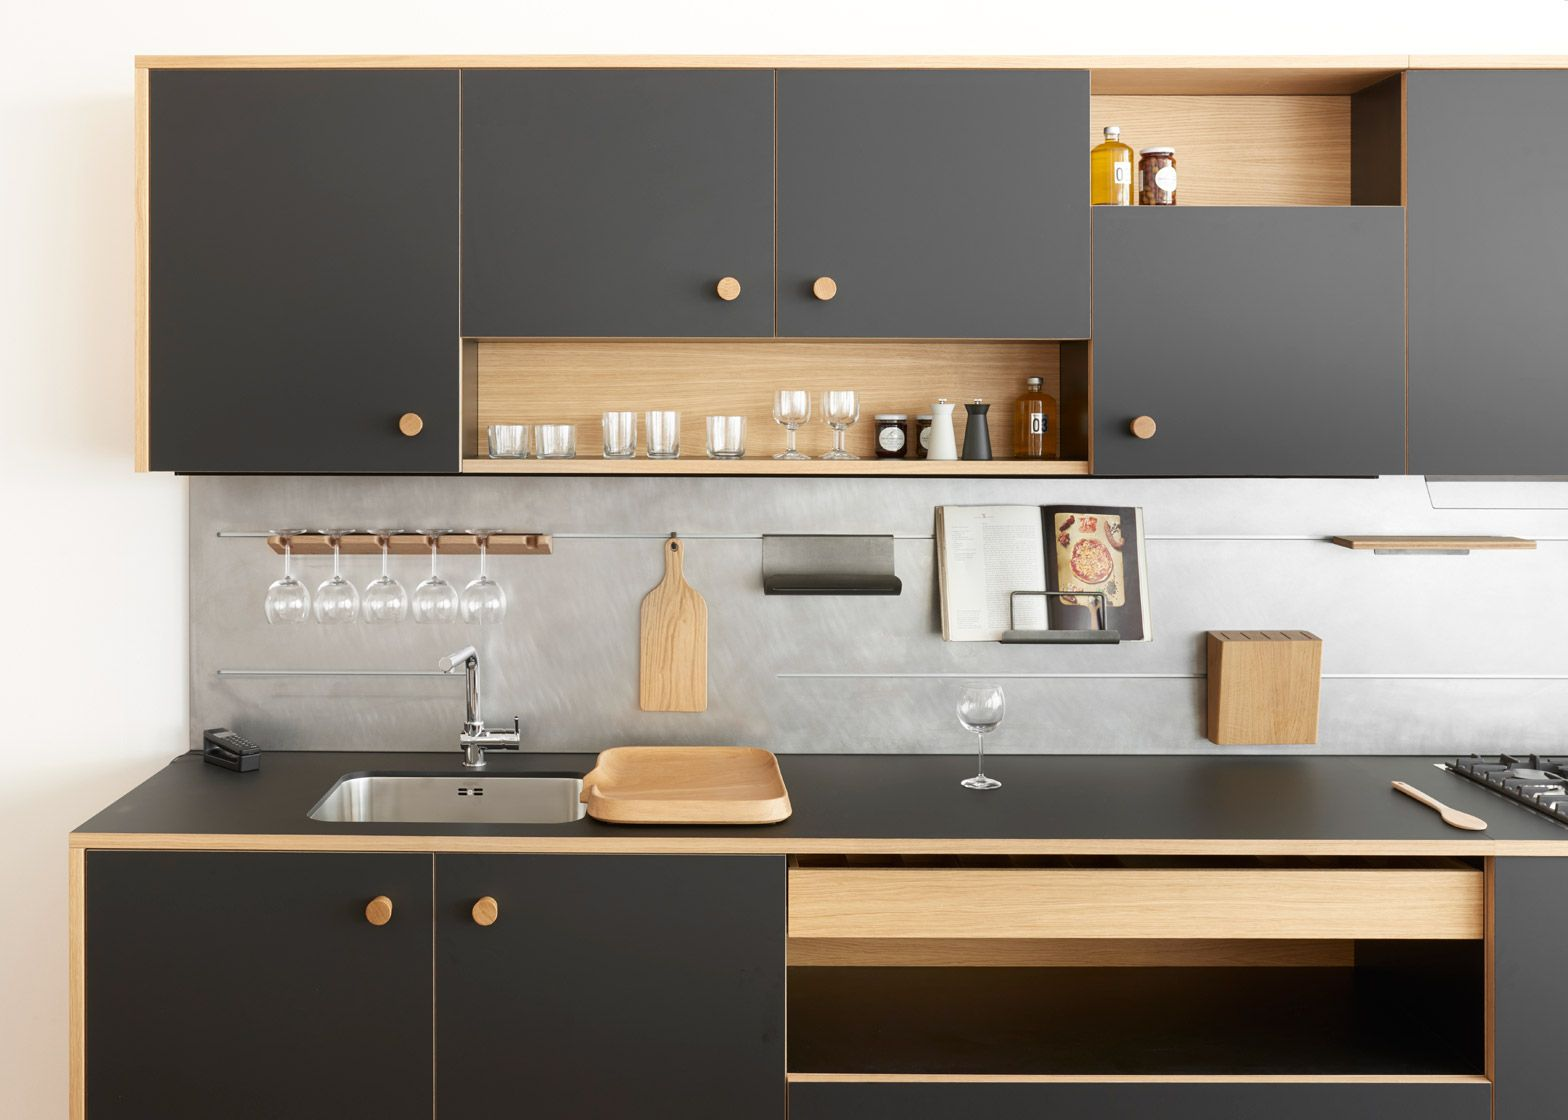 Kitchen Design Companies Classy Jasper Morrison Reveals First Kitchen Design For Schiffini Review